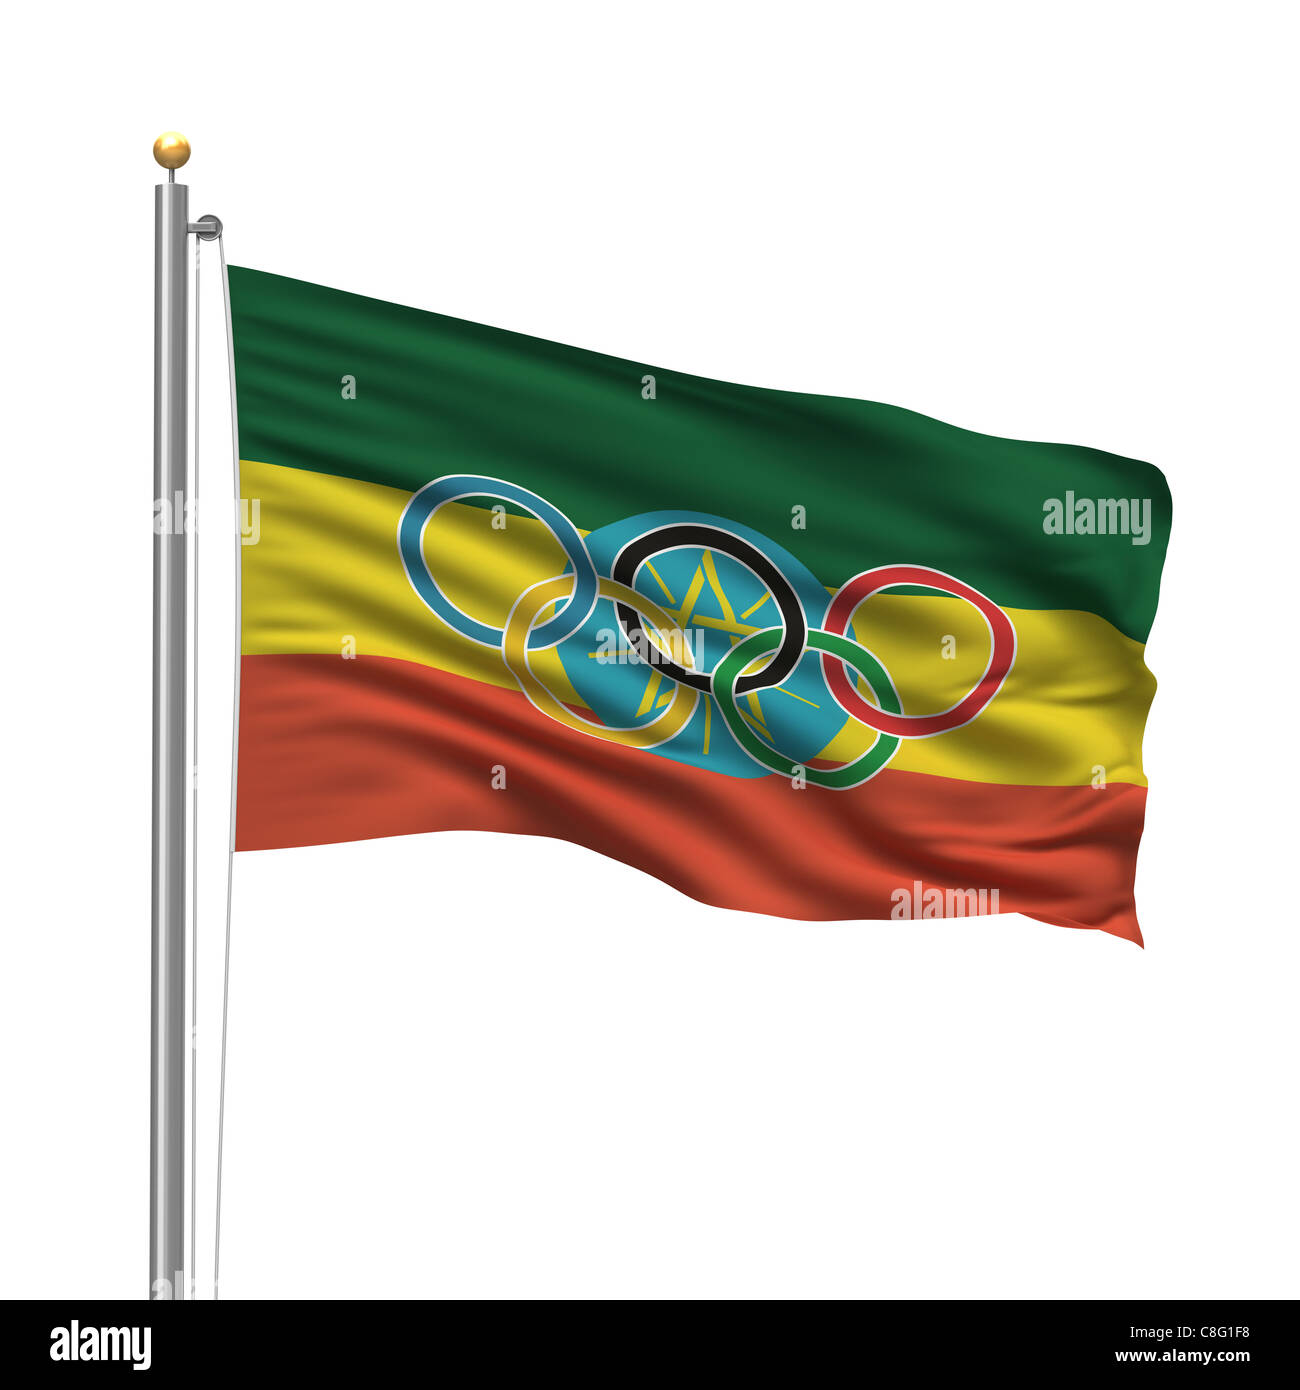 Flag of Ethiopia with Olympic rings - Stock Image